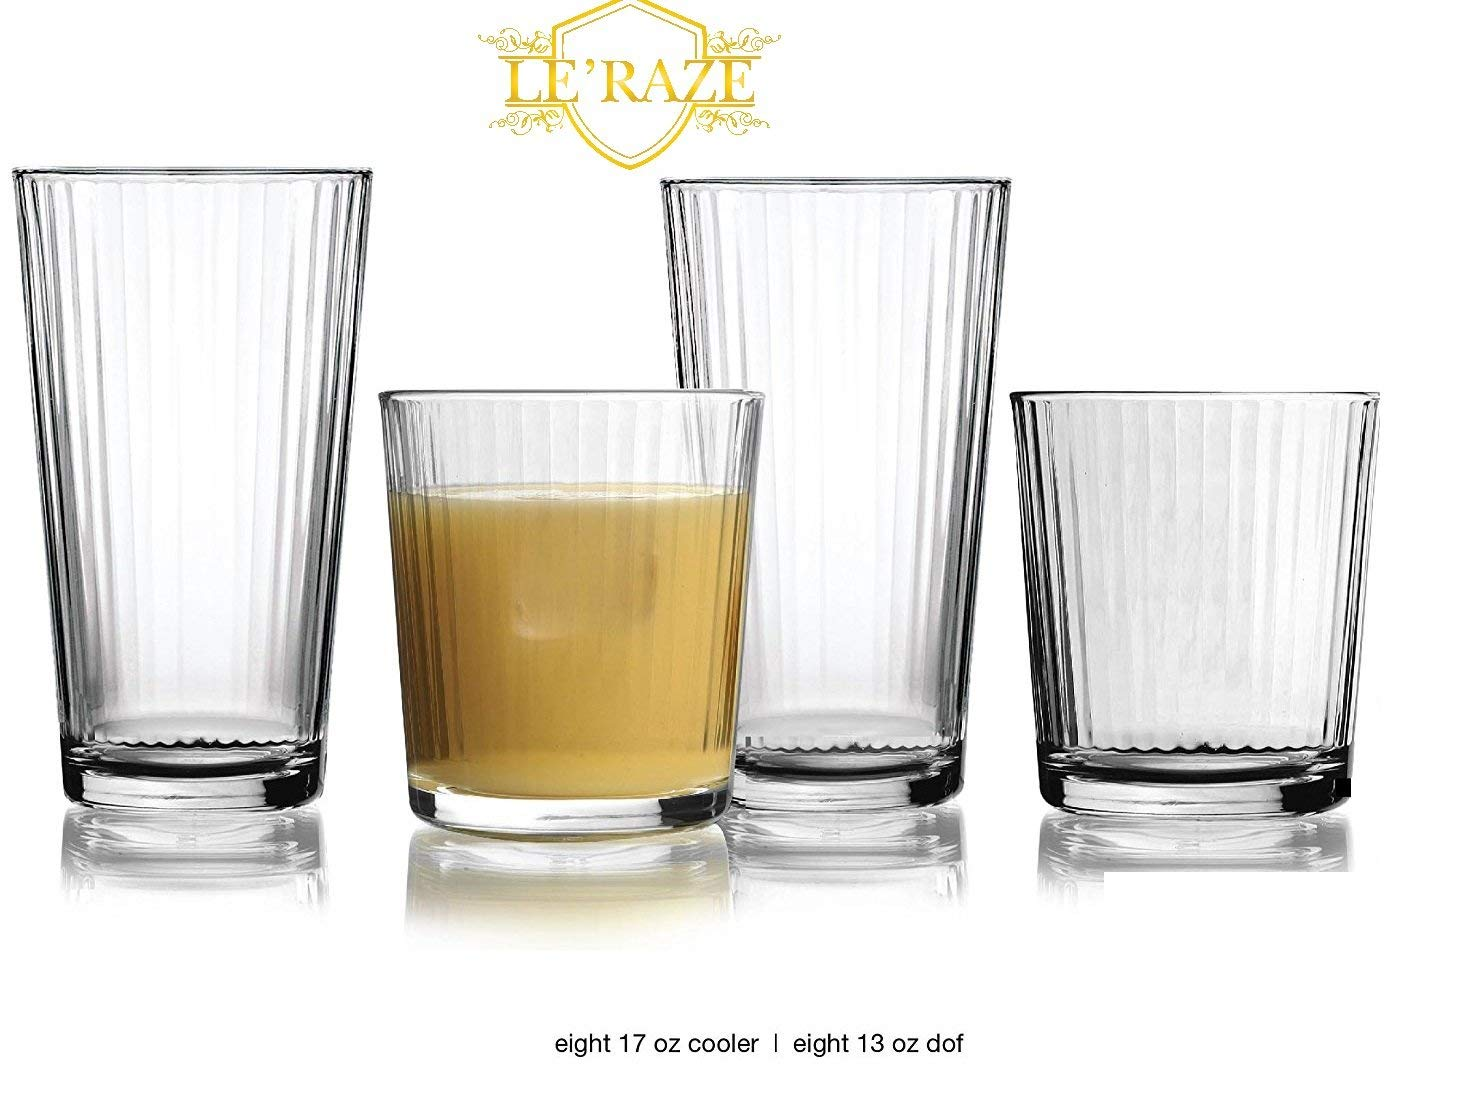 Le'raze Everyday 16-piece Glass Drinkware Combination Set, 8-13 ounce Drinking Glasses & 8-17 ounce Rocks Glasses, Lead-Free,